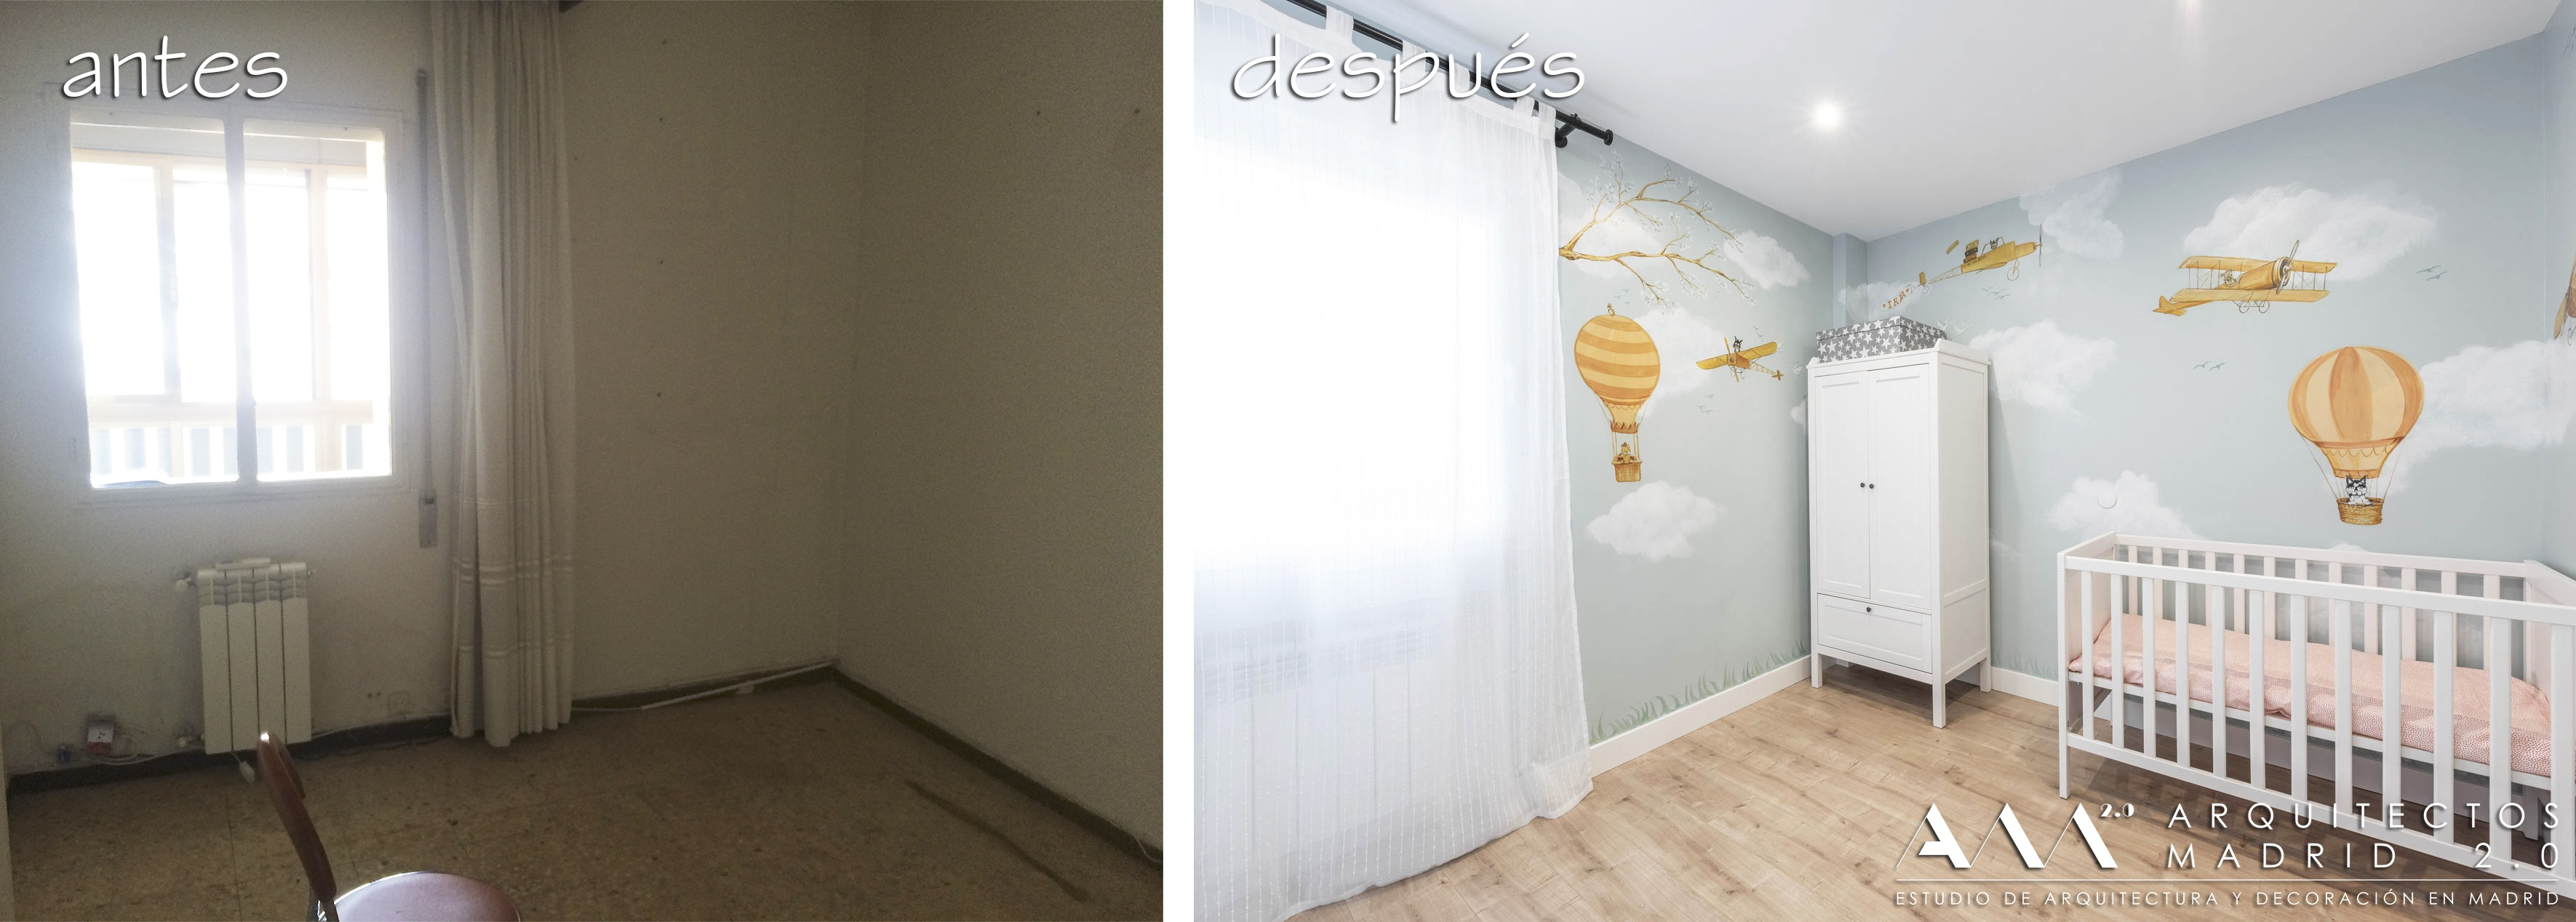 antes-despues-reforma-vivienda-housing-reform-architects-design-childs-bedroom